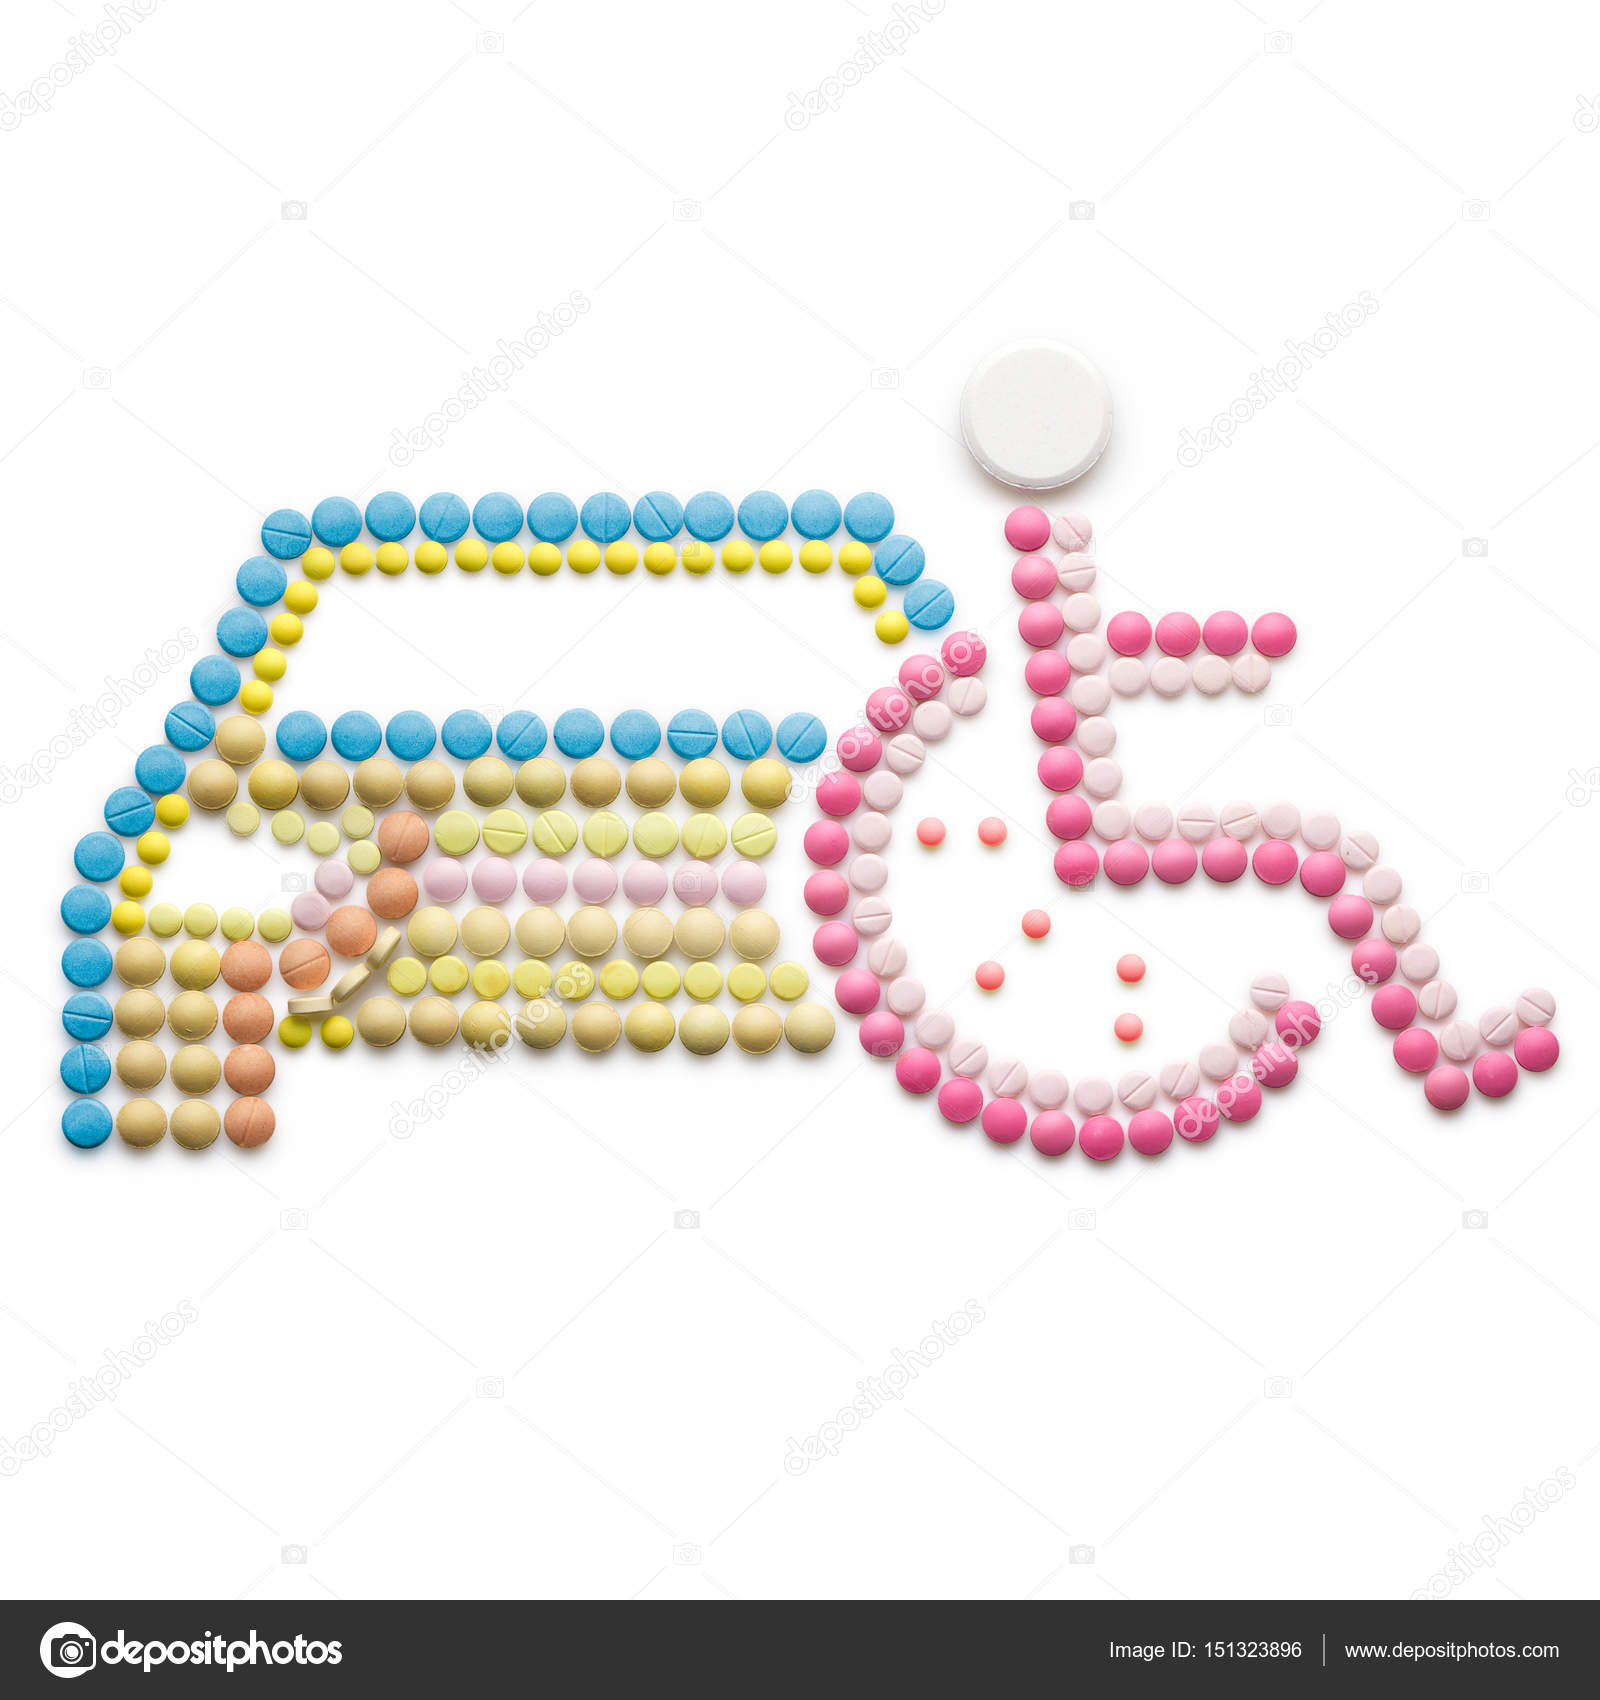 Creative medicine and healthcare concept stock photo fisher abstract wheelchair invalid symbol disabled person in a wheelchair in front of a car photo by fisherotostudio buycottarizona